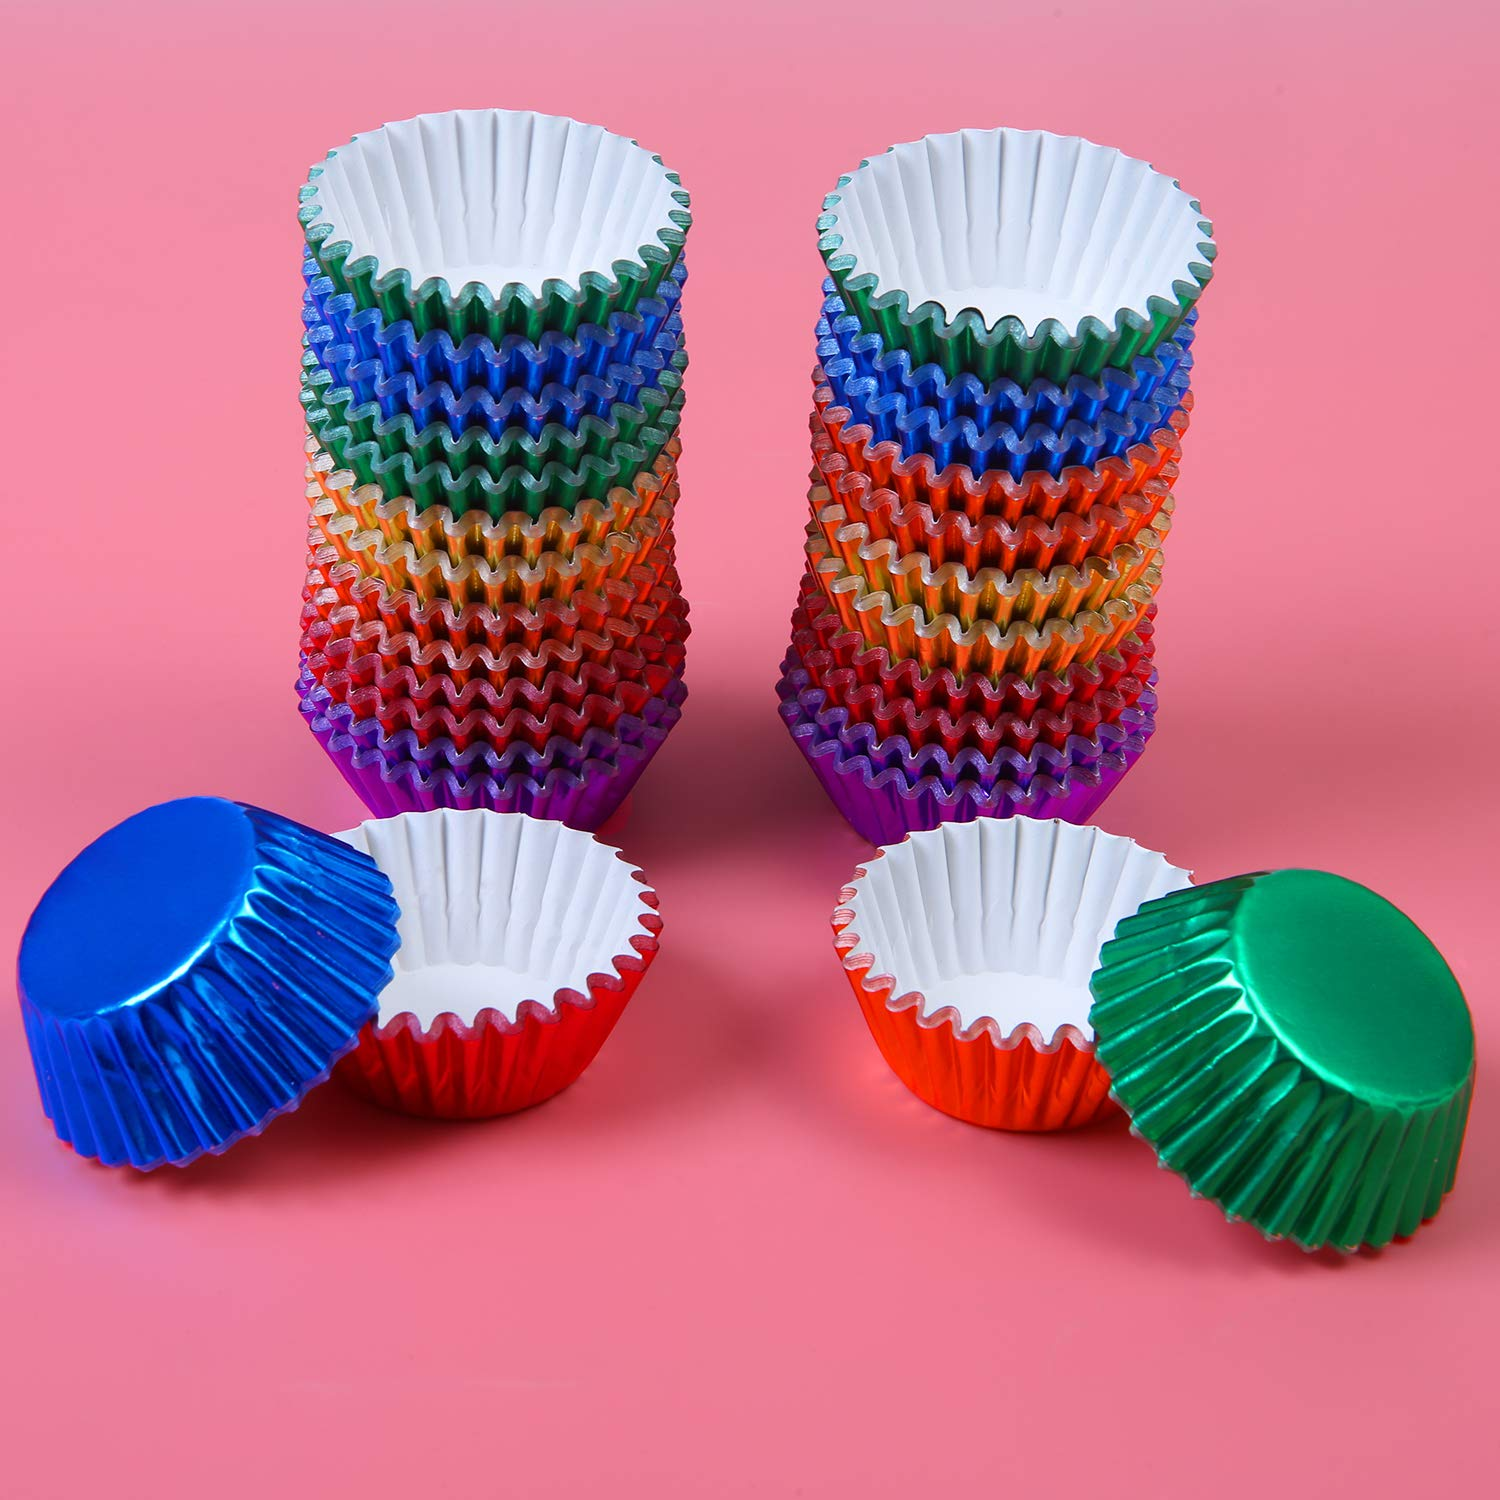 6 Colors Elcoho 600 Pieces 1.25 Inch Mini Foil Metallic Cupcake Liners Muffin Paper Cases Baking Cups